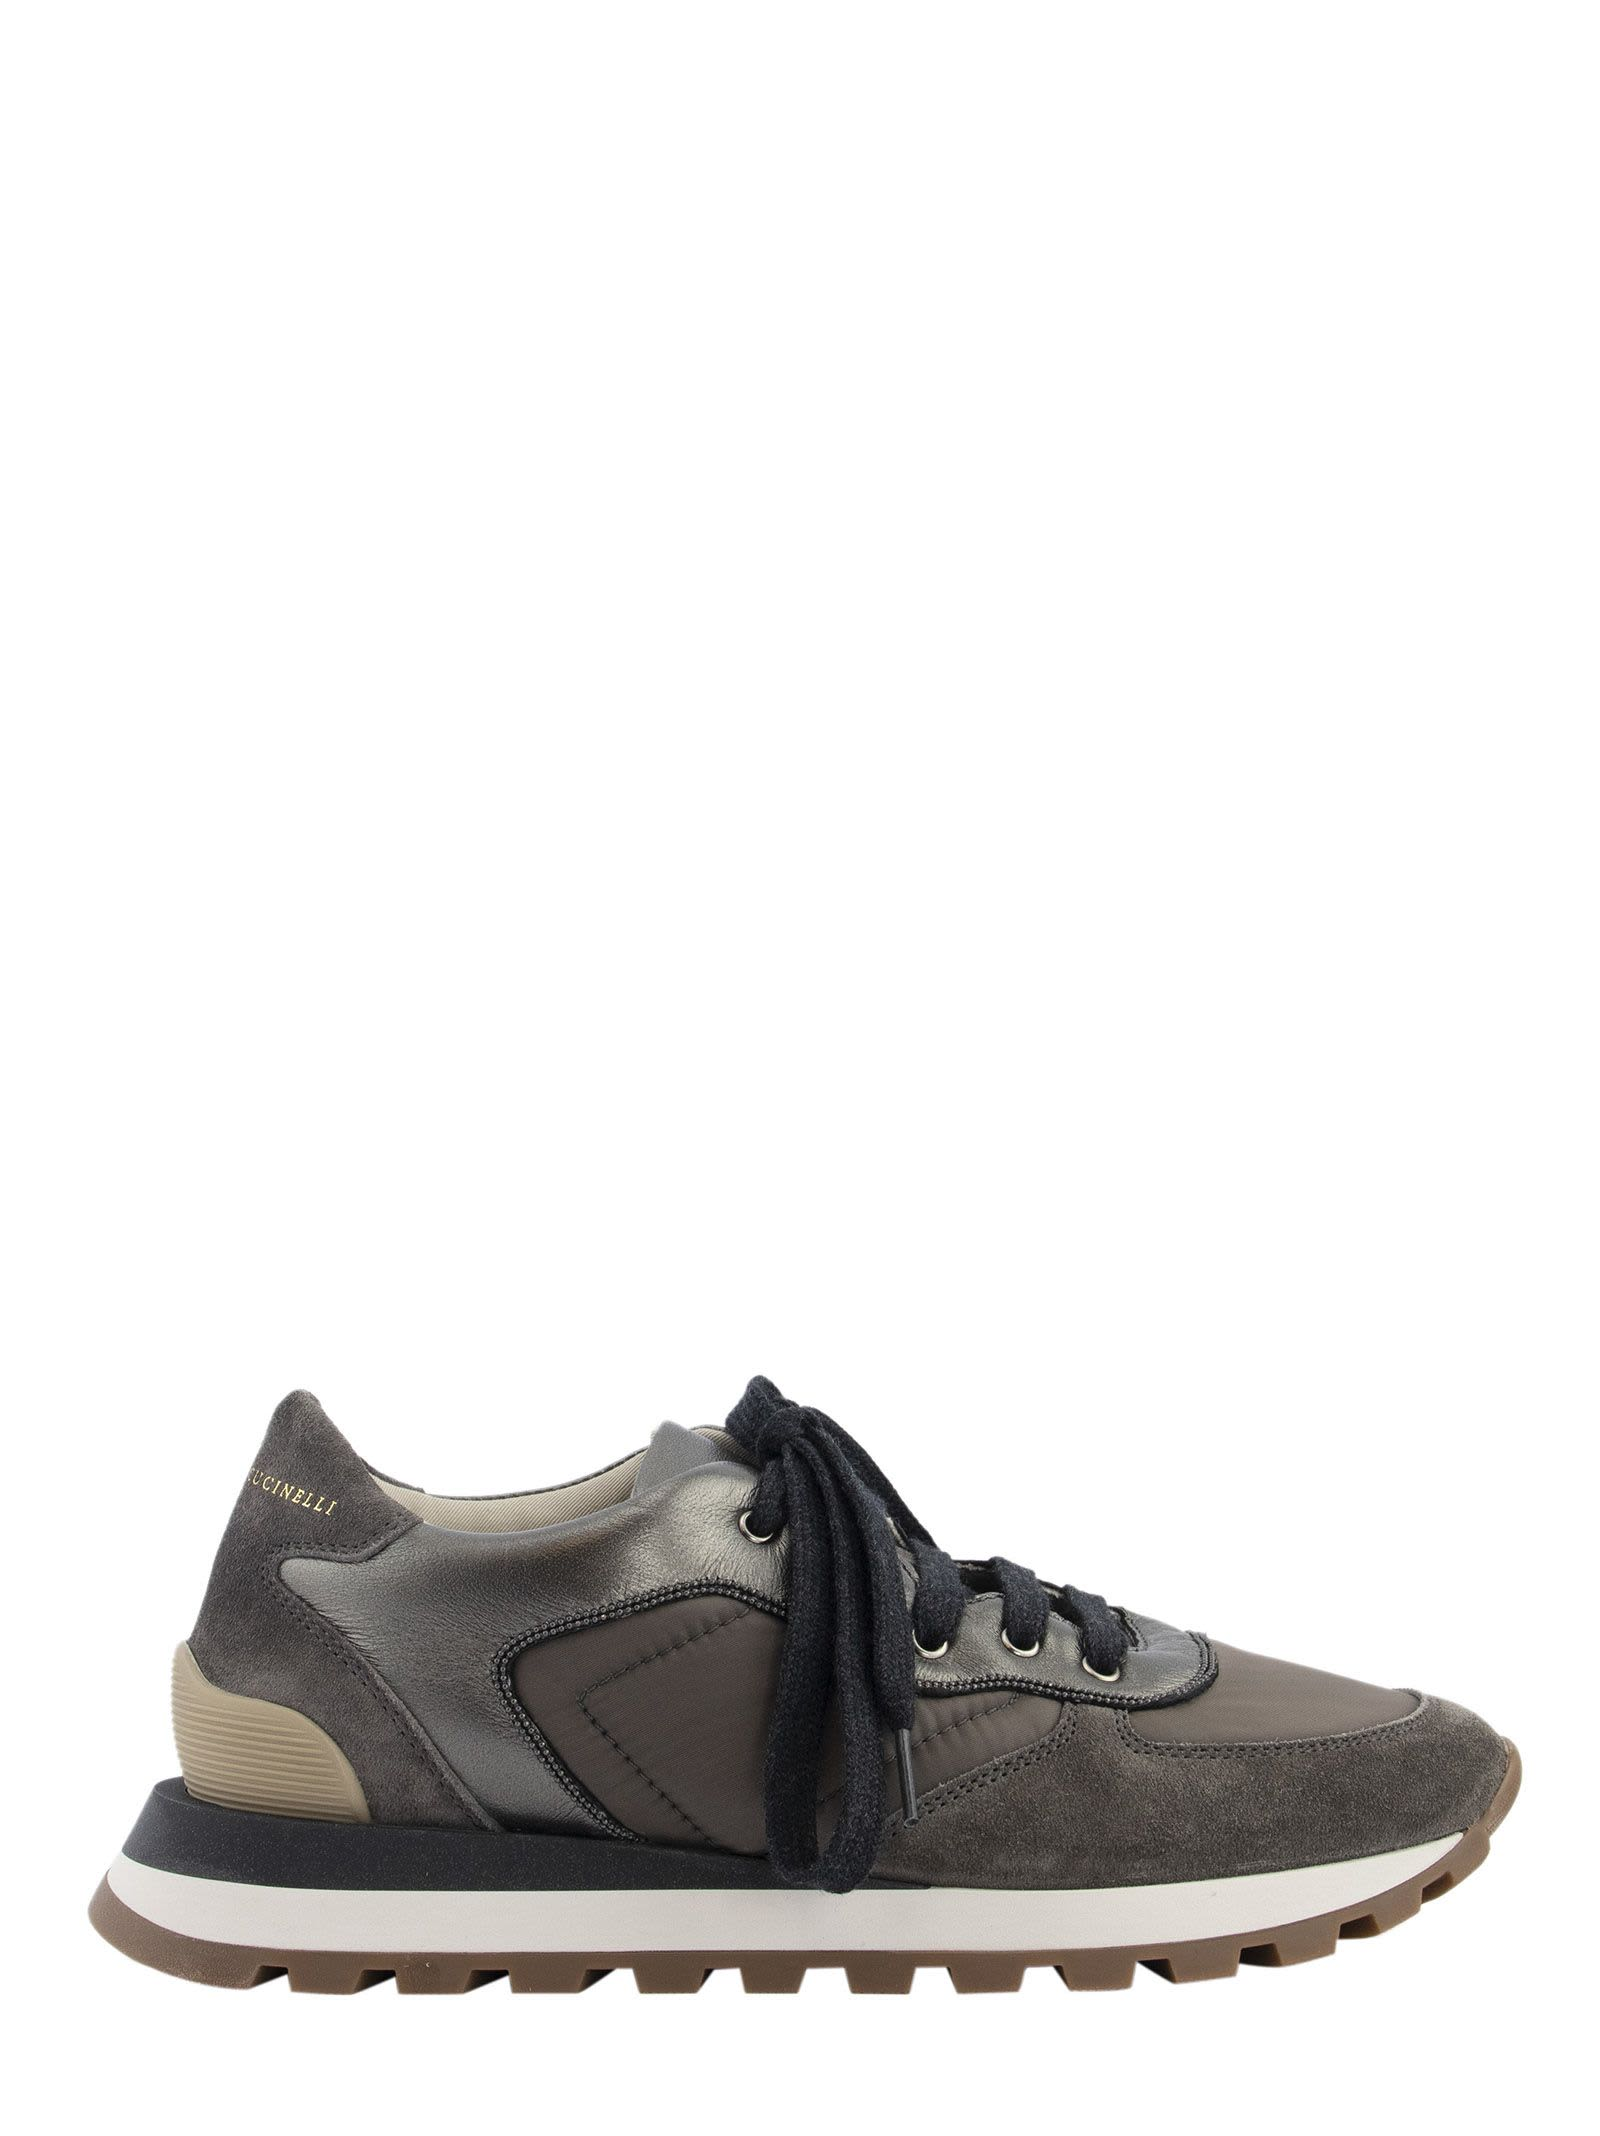 Brunello Cucinelli SUEDE, LEATHER AND FABRIC SNEAKERS